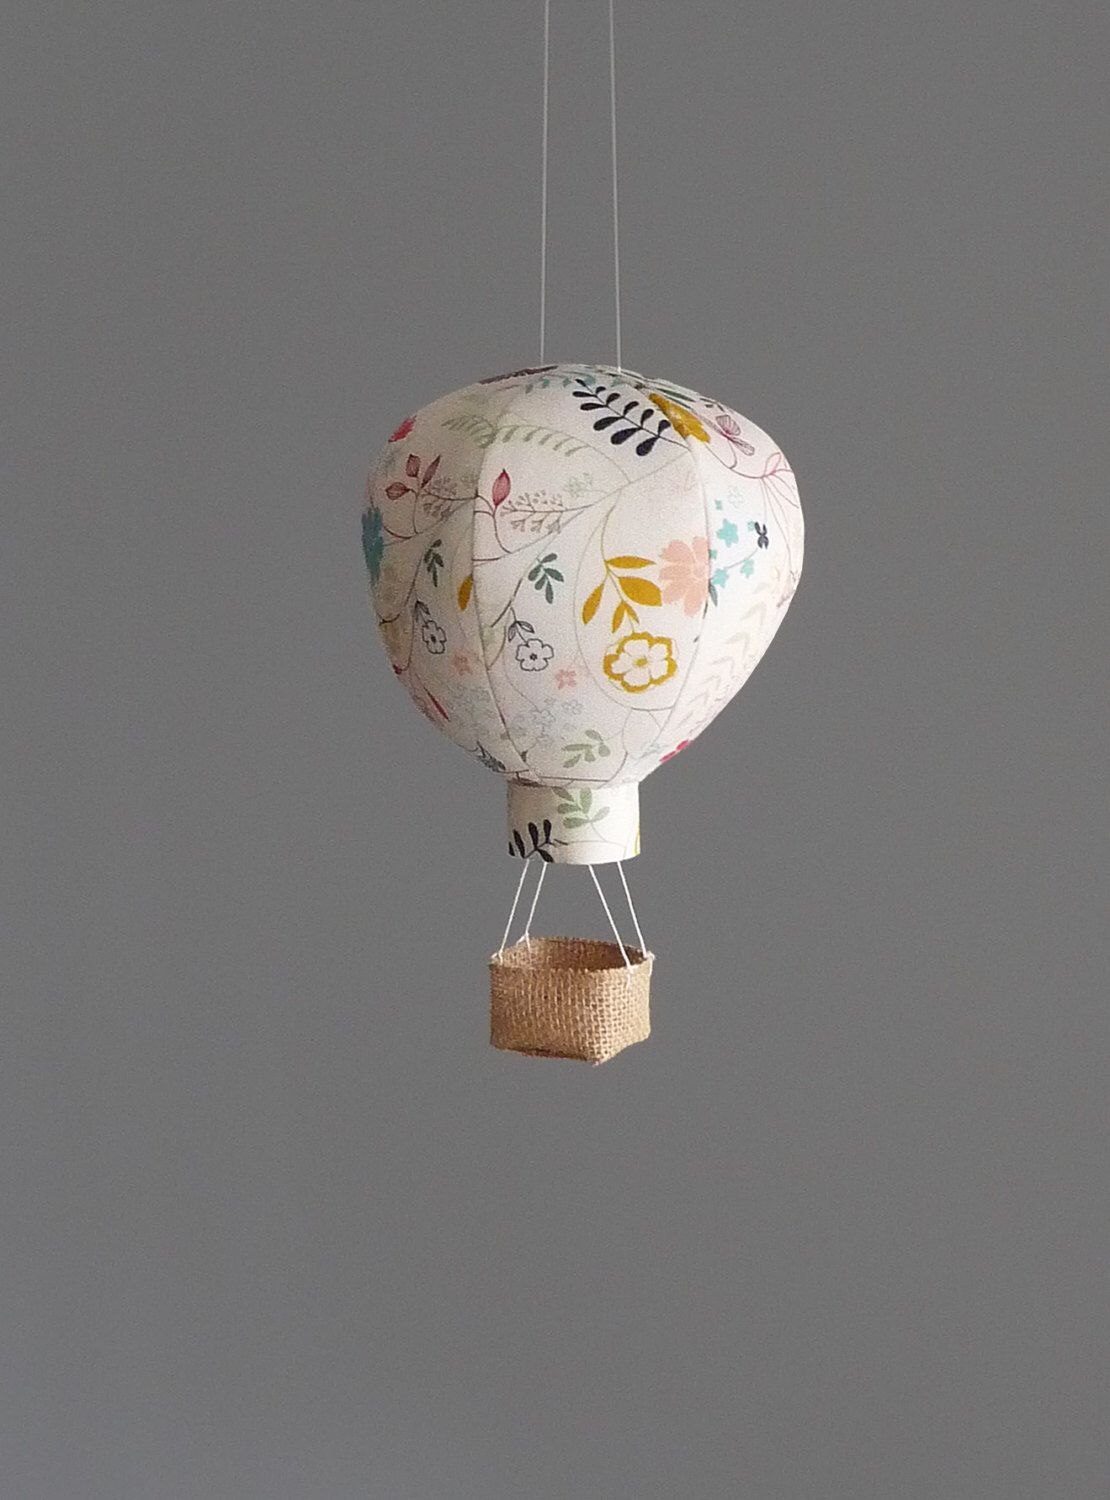 Theme De Decoration Pour Creche Hot Air Balloon Decor In Wildflower Nursery Art Girl